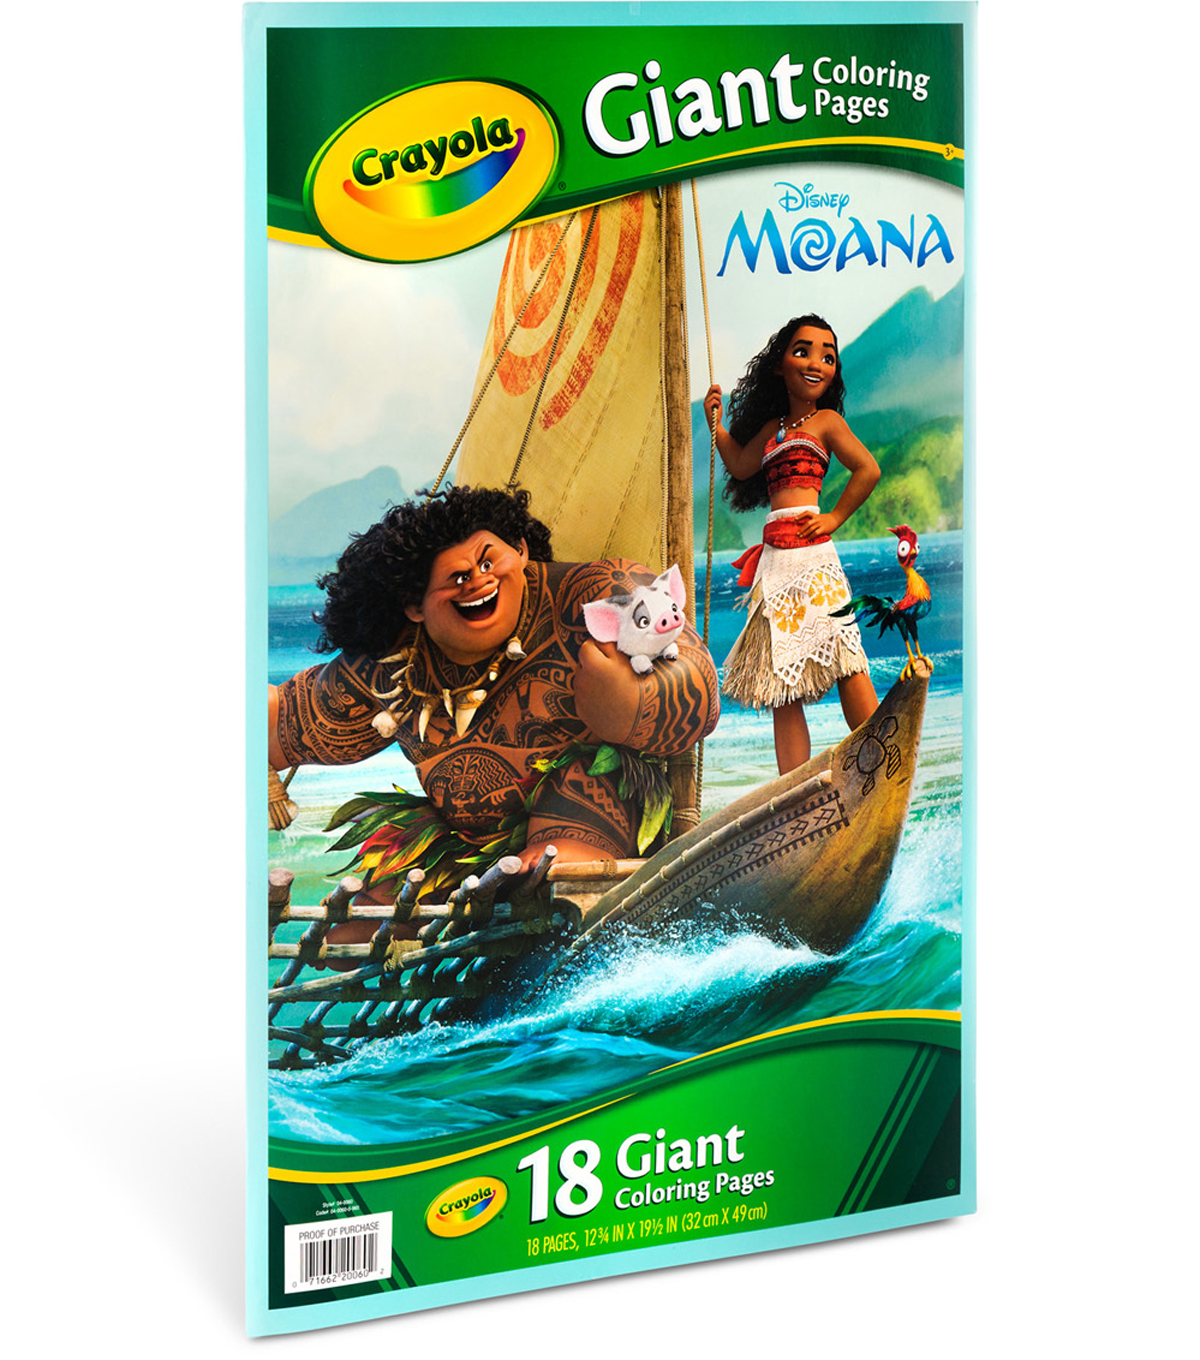 Crayola Giant Coloring Pages Moana Joann